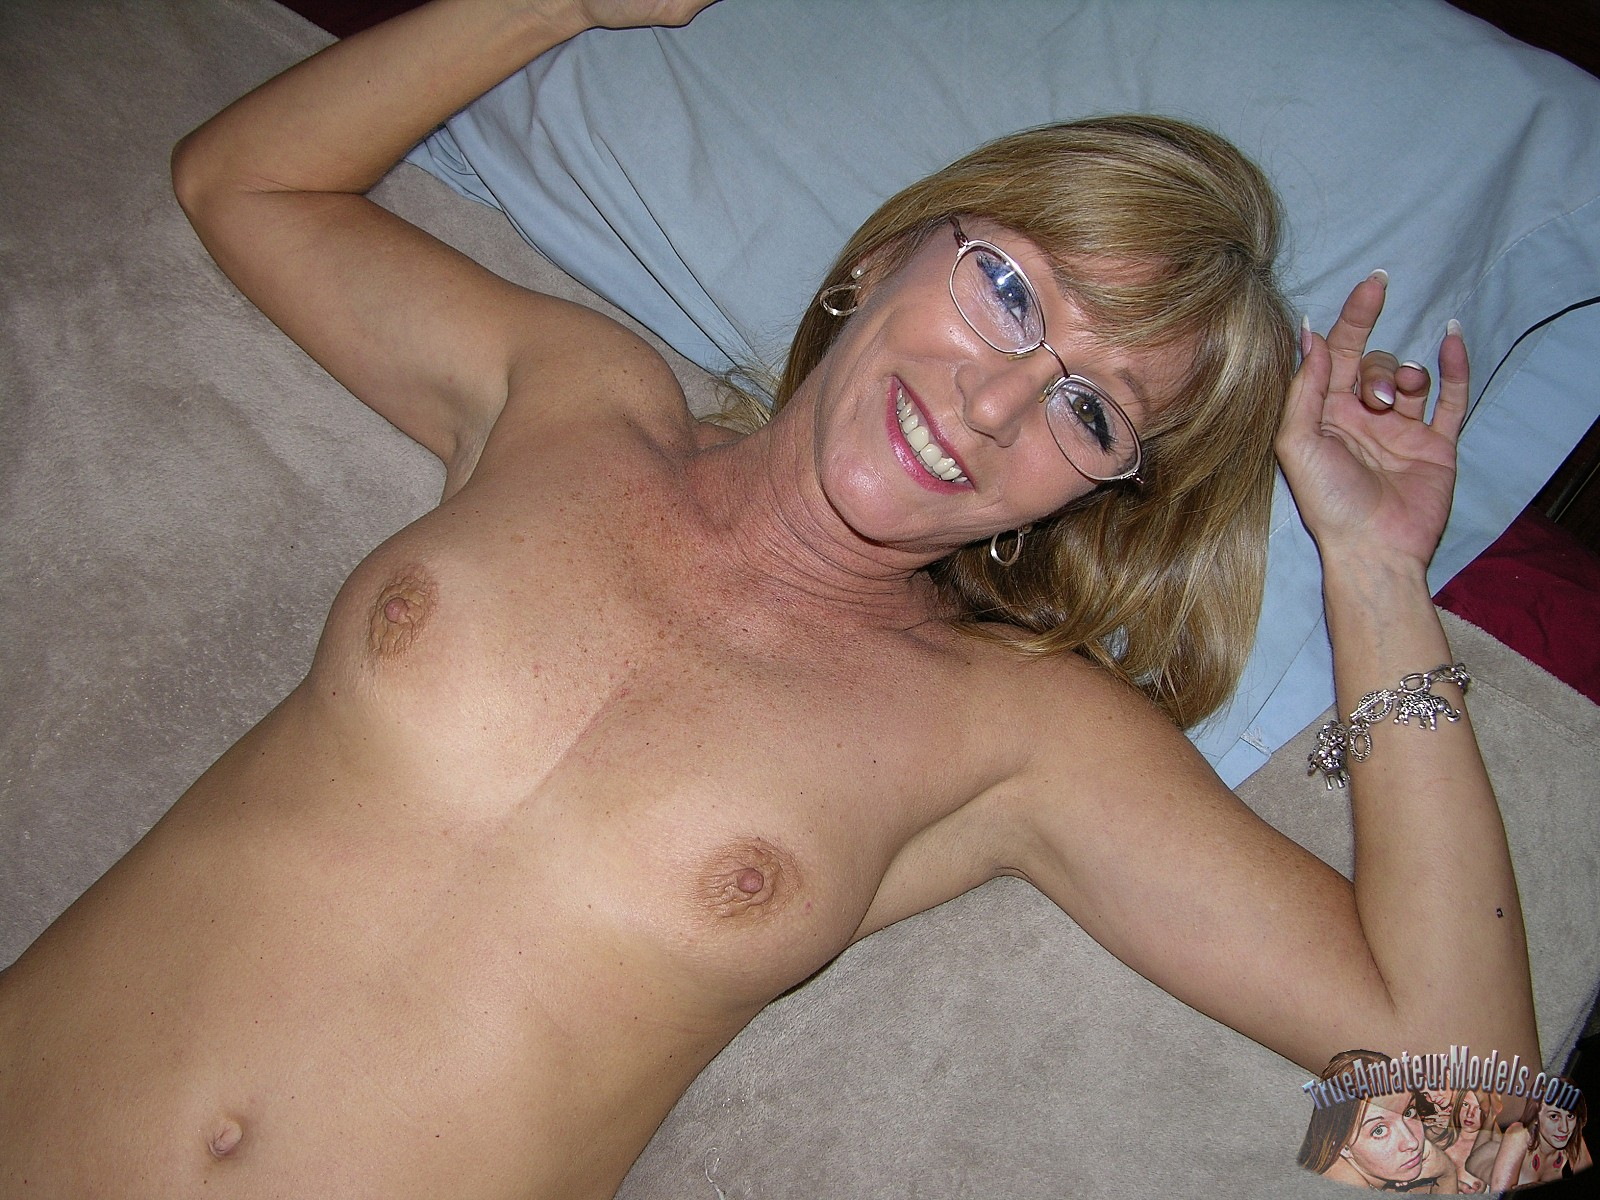 Nude cougars with glasses